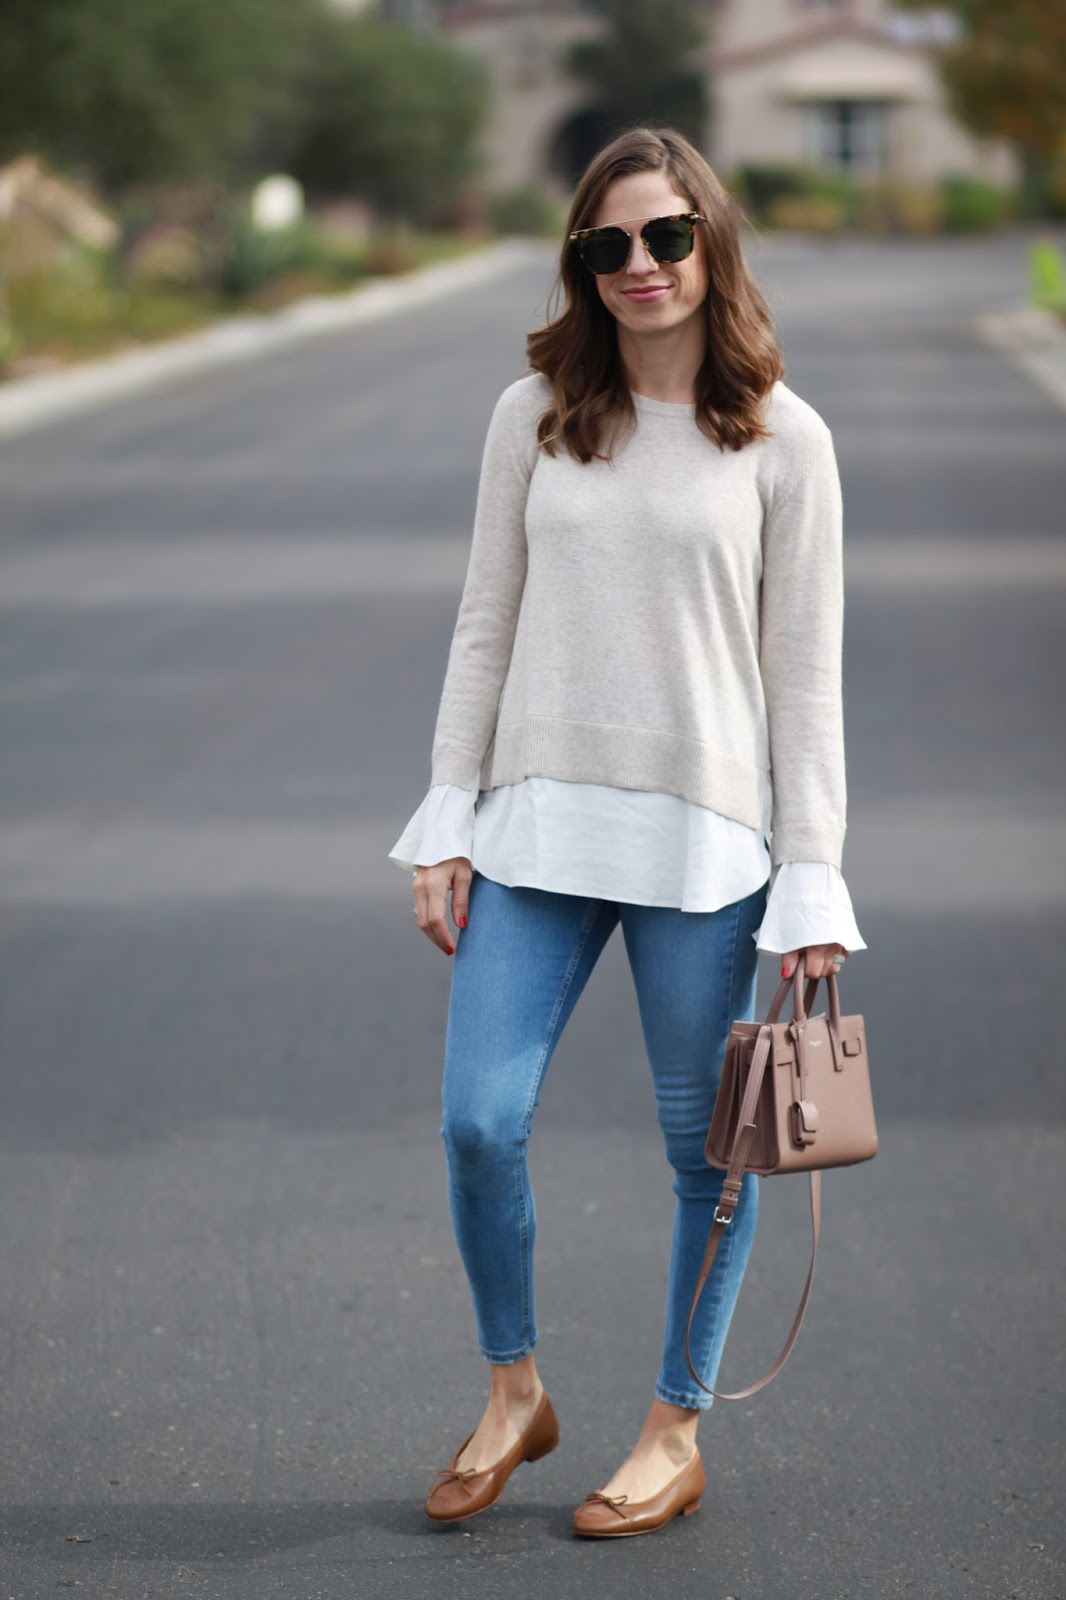 brown chanel flats outfit